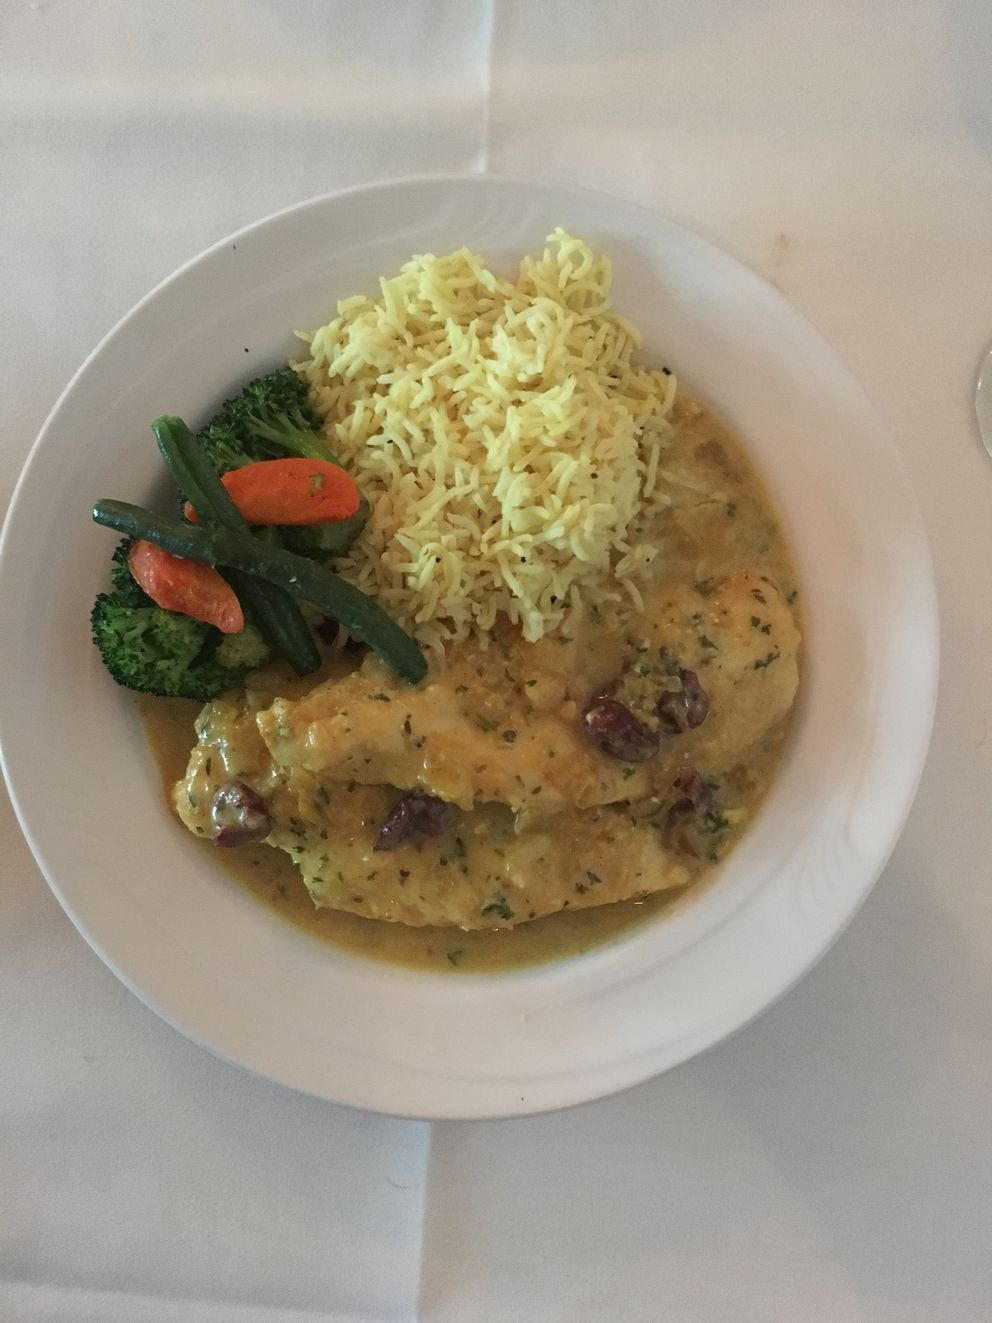 Poulet de Casablanca is sautéed chicken breast with a saffron, kalamata olives and lemon sauce. (Photo by Mara Severin)